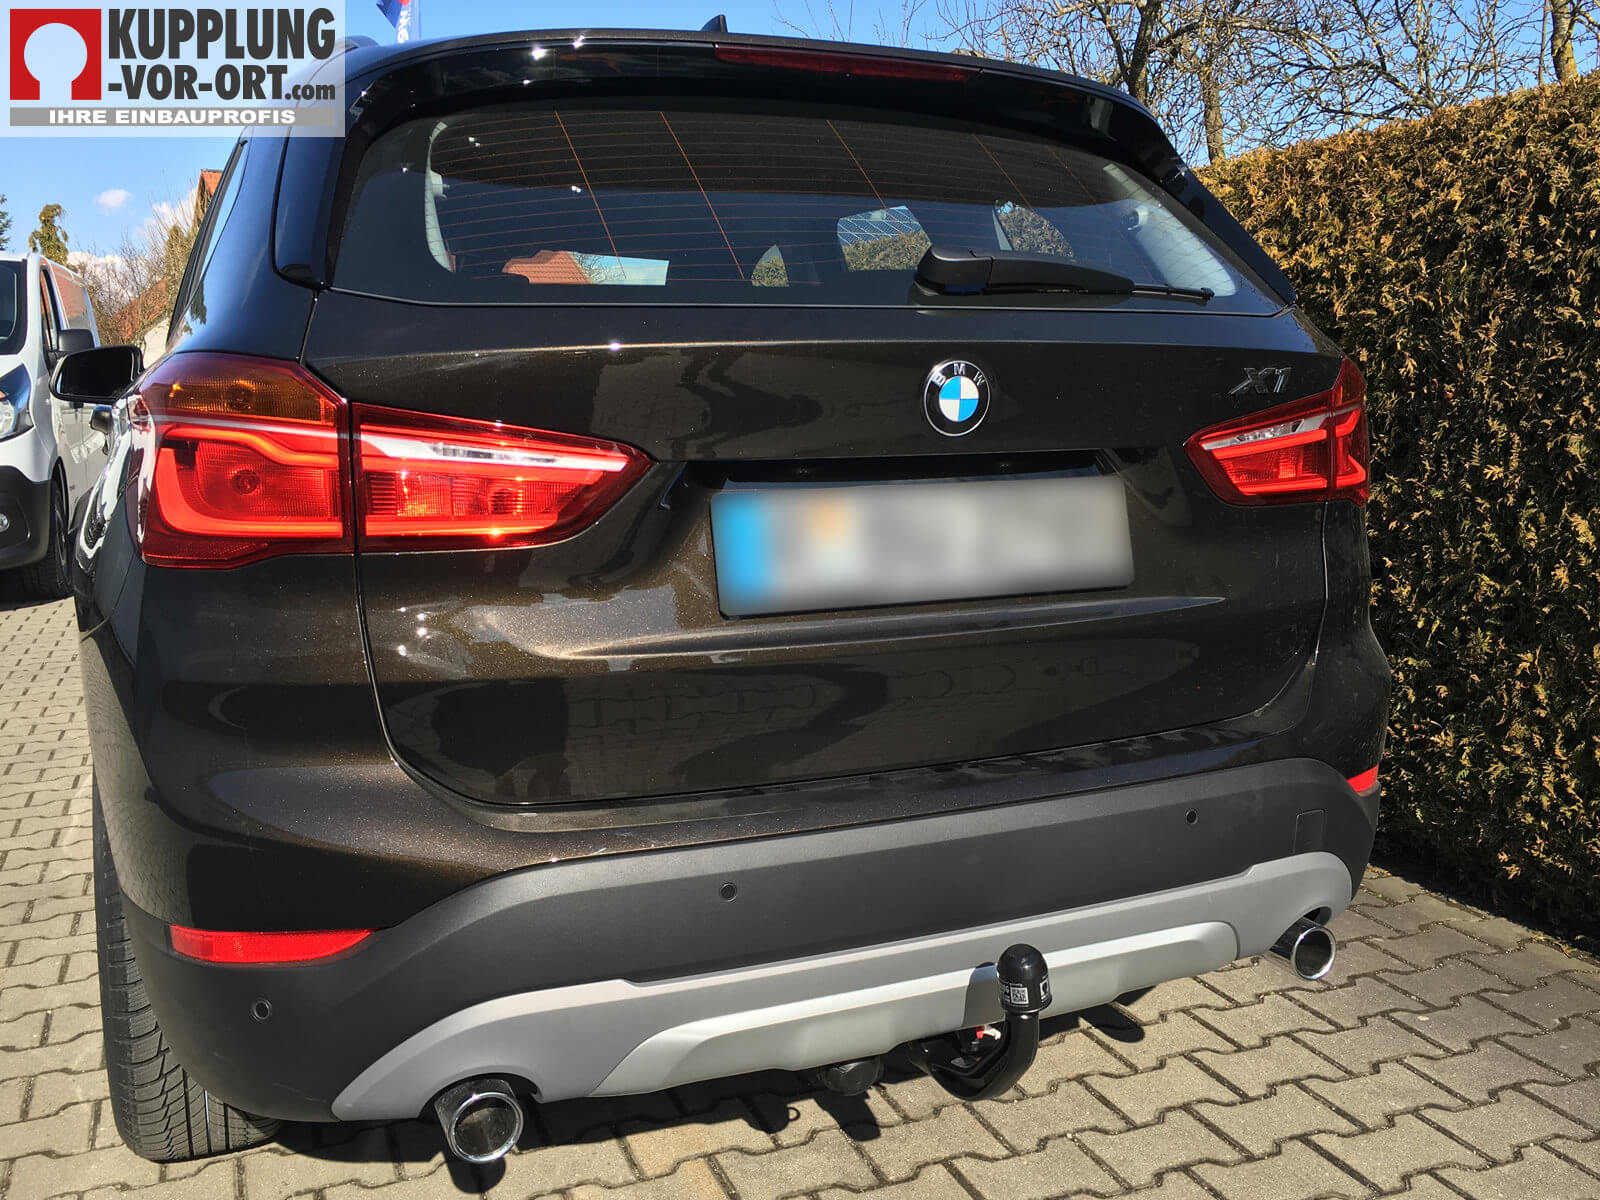 anh ngerkupplung f r bmw x1 2016 kupplung vor. Black Bedroom Furniture Sets. Home Design Ideas